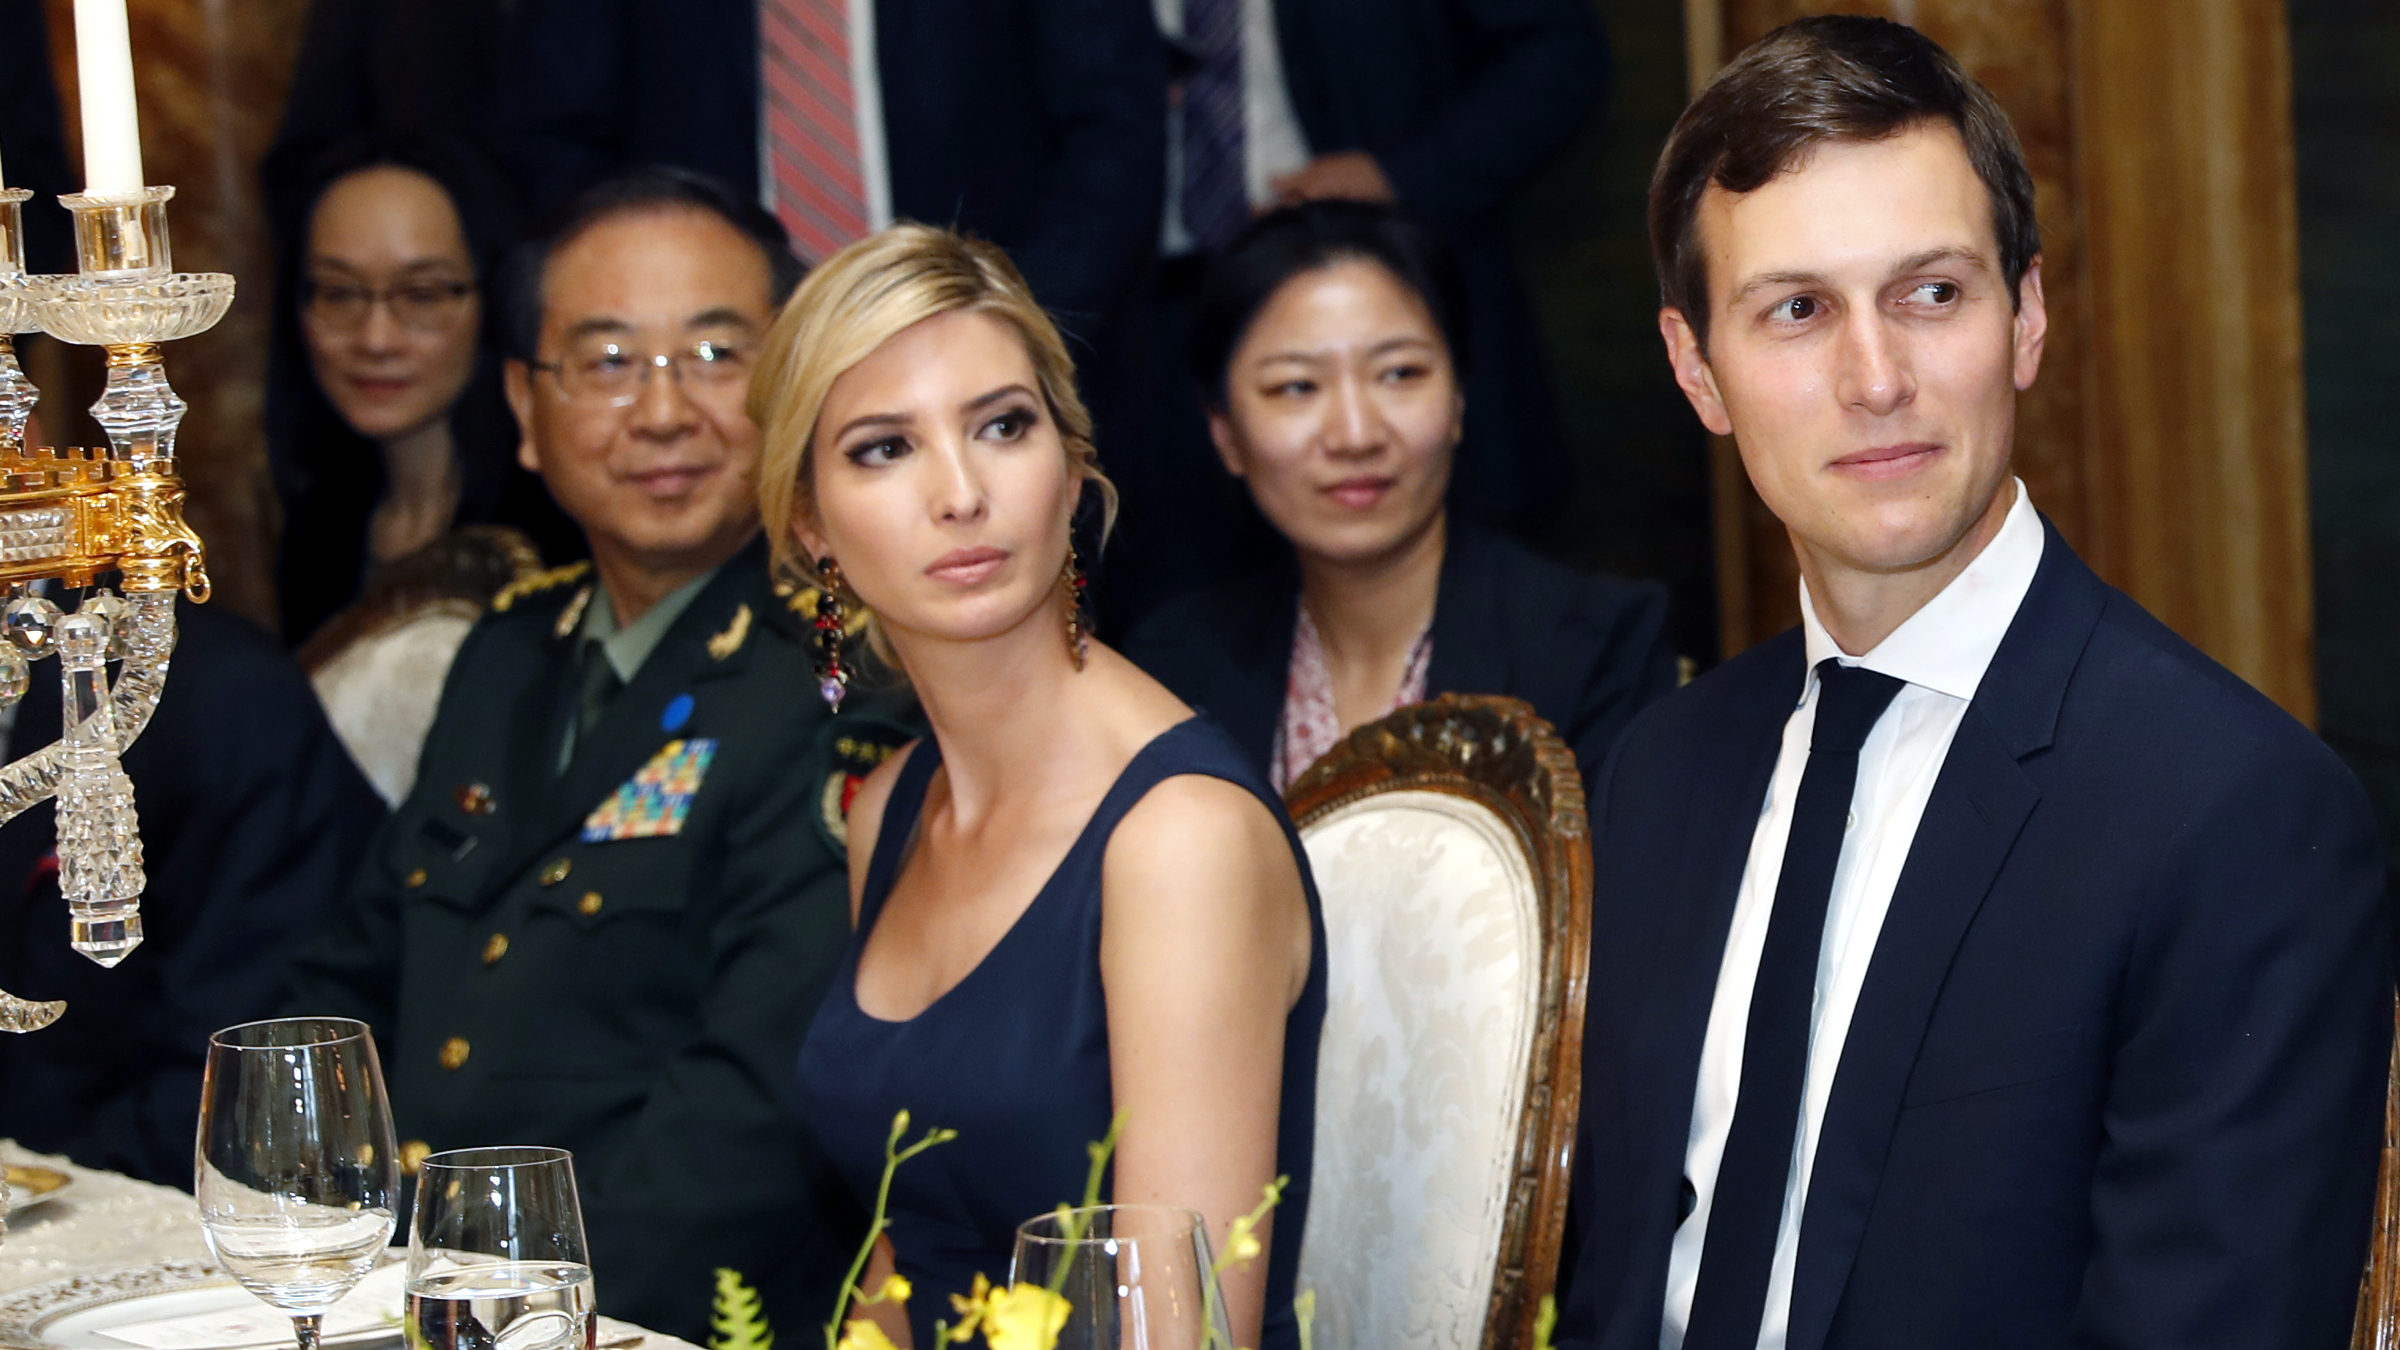 Ivanka Trump and her husband Jared Kushner dine with Chinese officials